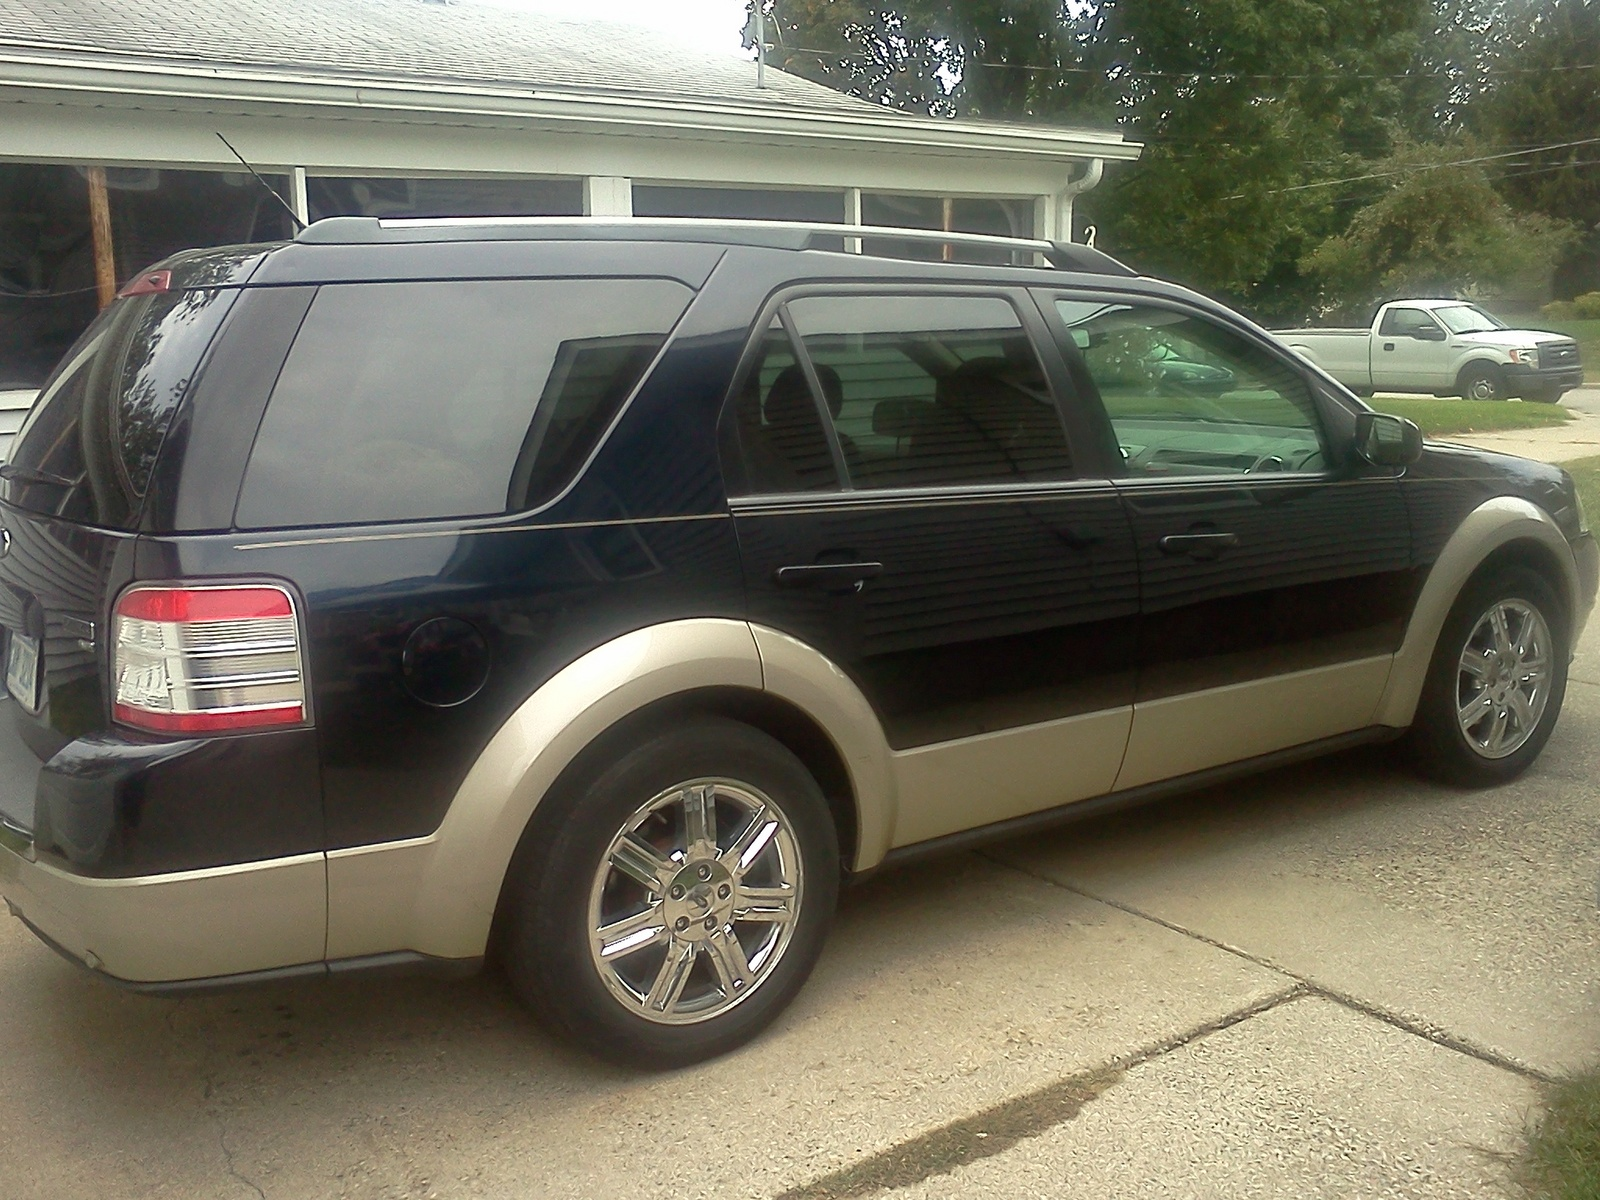 2001 Ford Focus Wagon in addition 2006 Ford Freestar additionally Lincoln Navigator Fuse Box Diagram furthermore 2004 VW Beetle Fuse Box Diagram furthermore 2005 Infiniti G35 4 Door Sedan. on 2006 ford fusion engine size